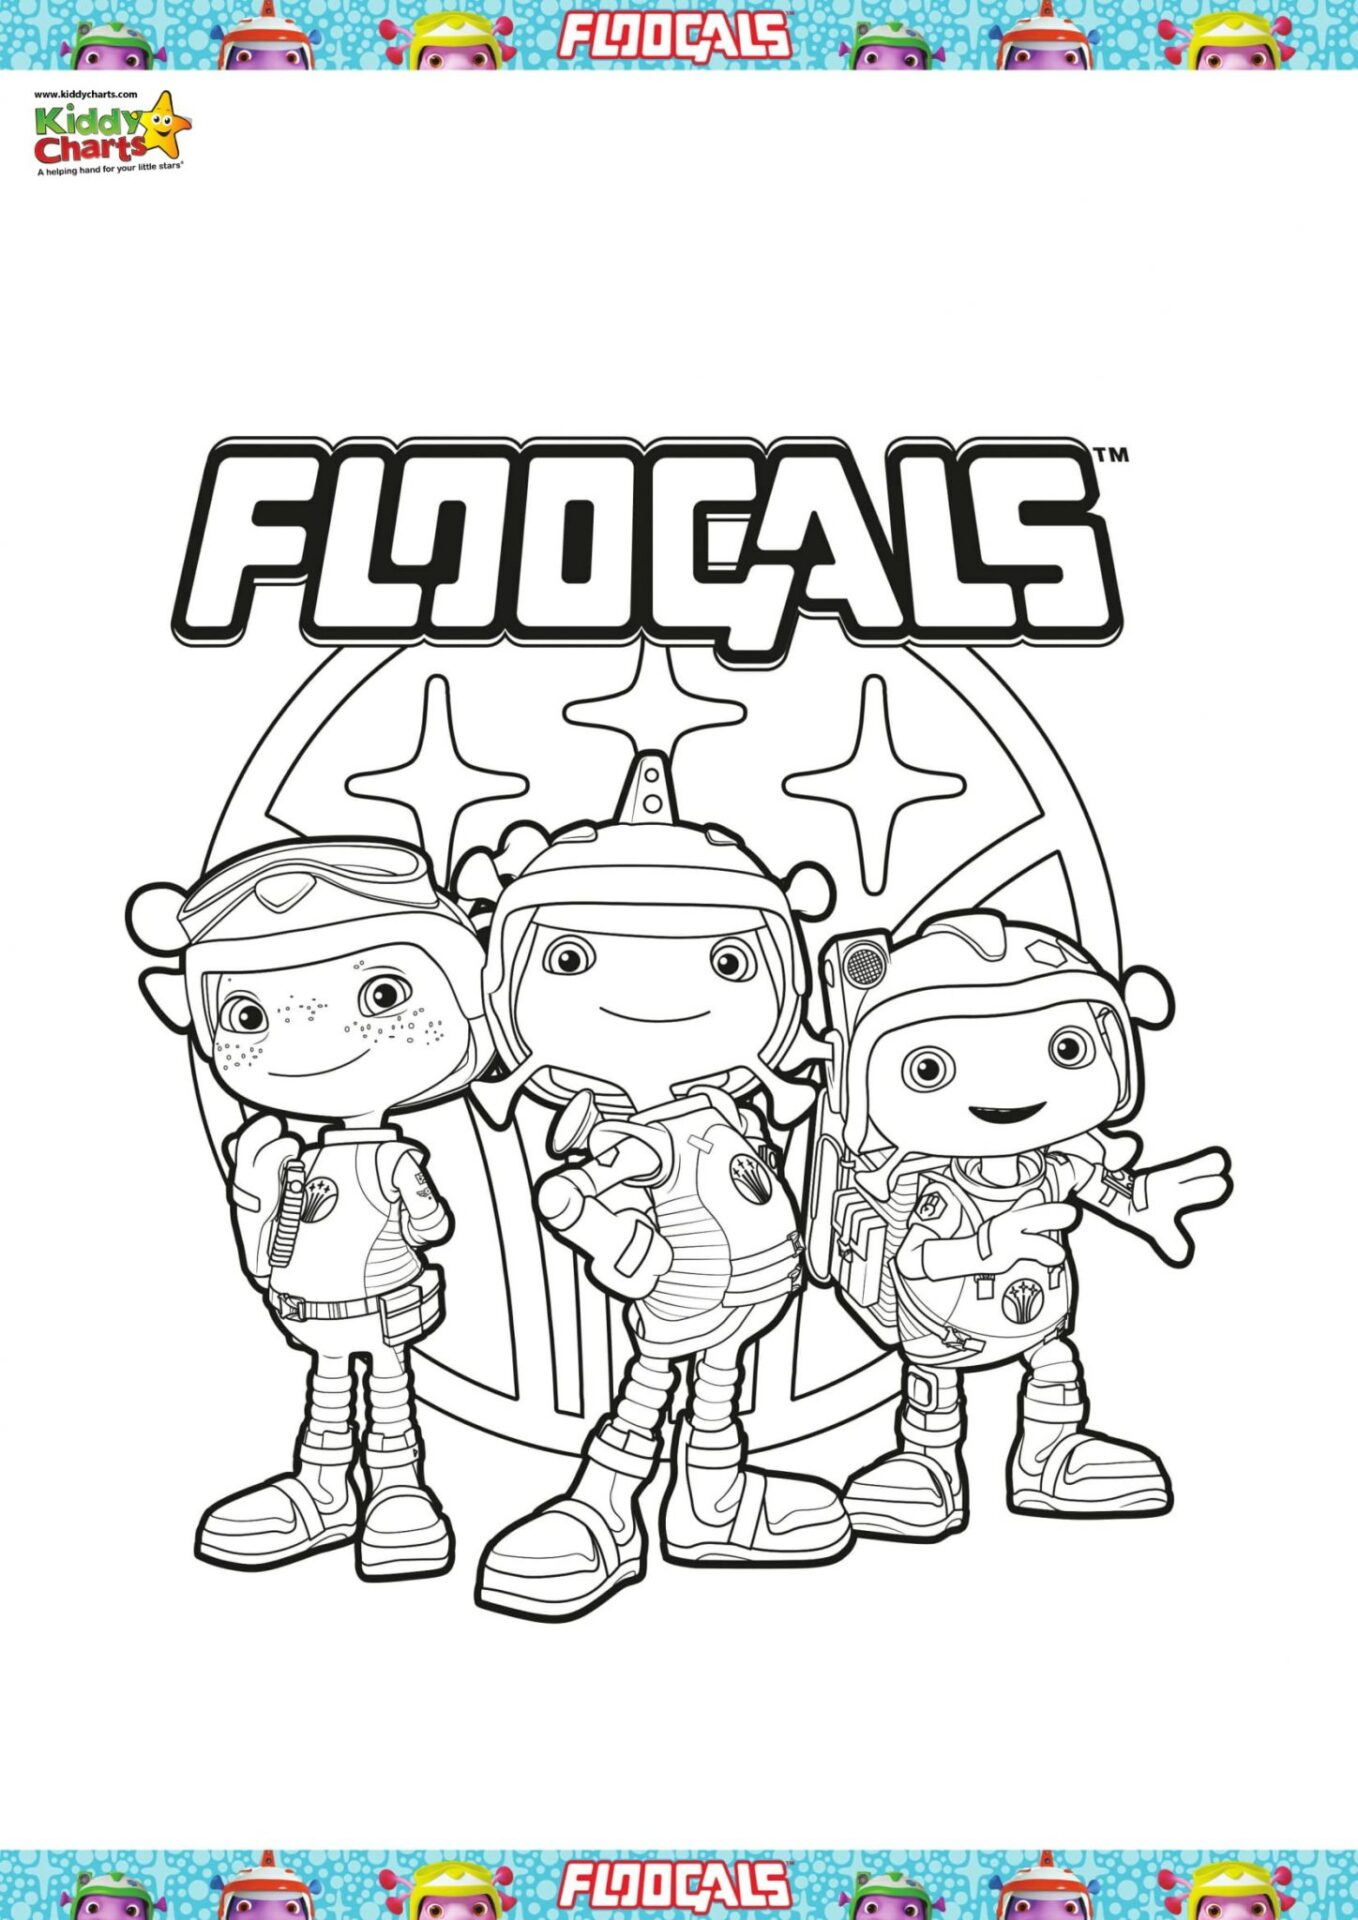 We've got this great floogals colouring sheet for you all - its fun fun fun!